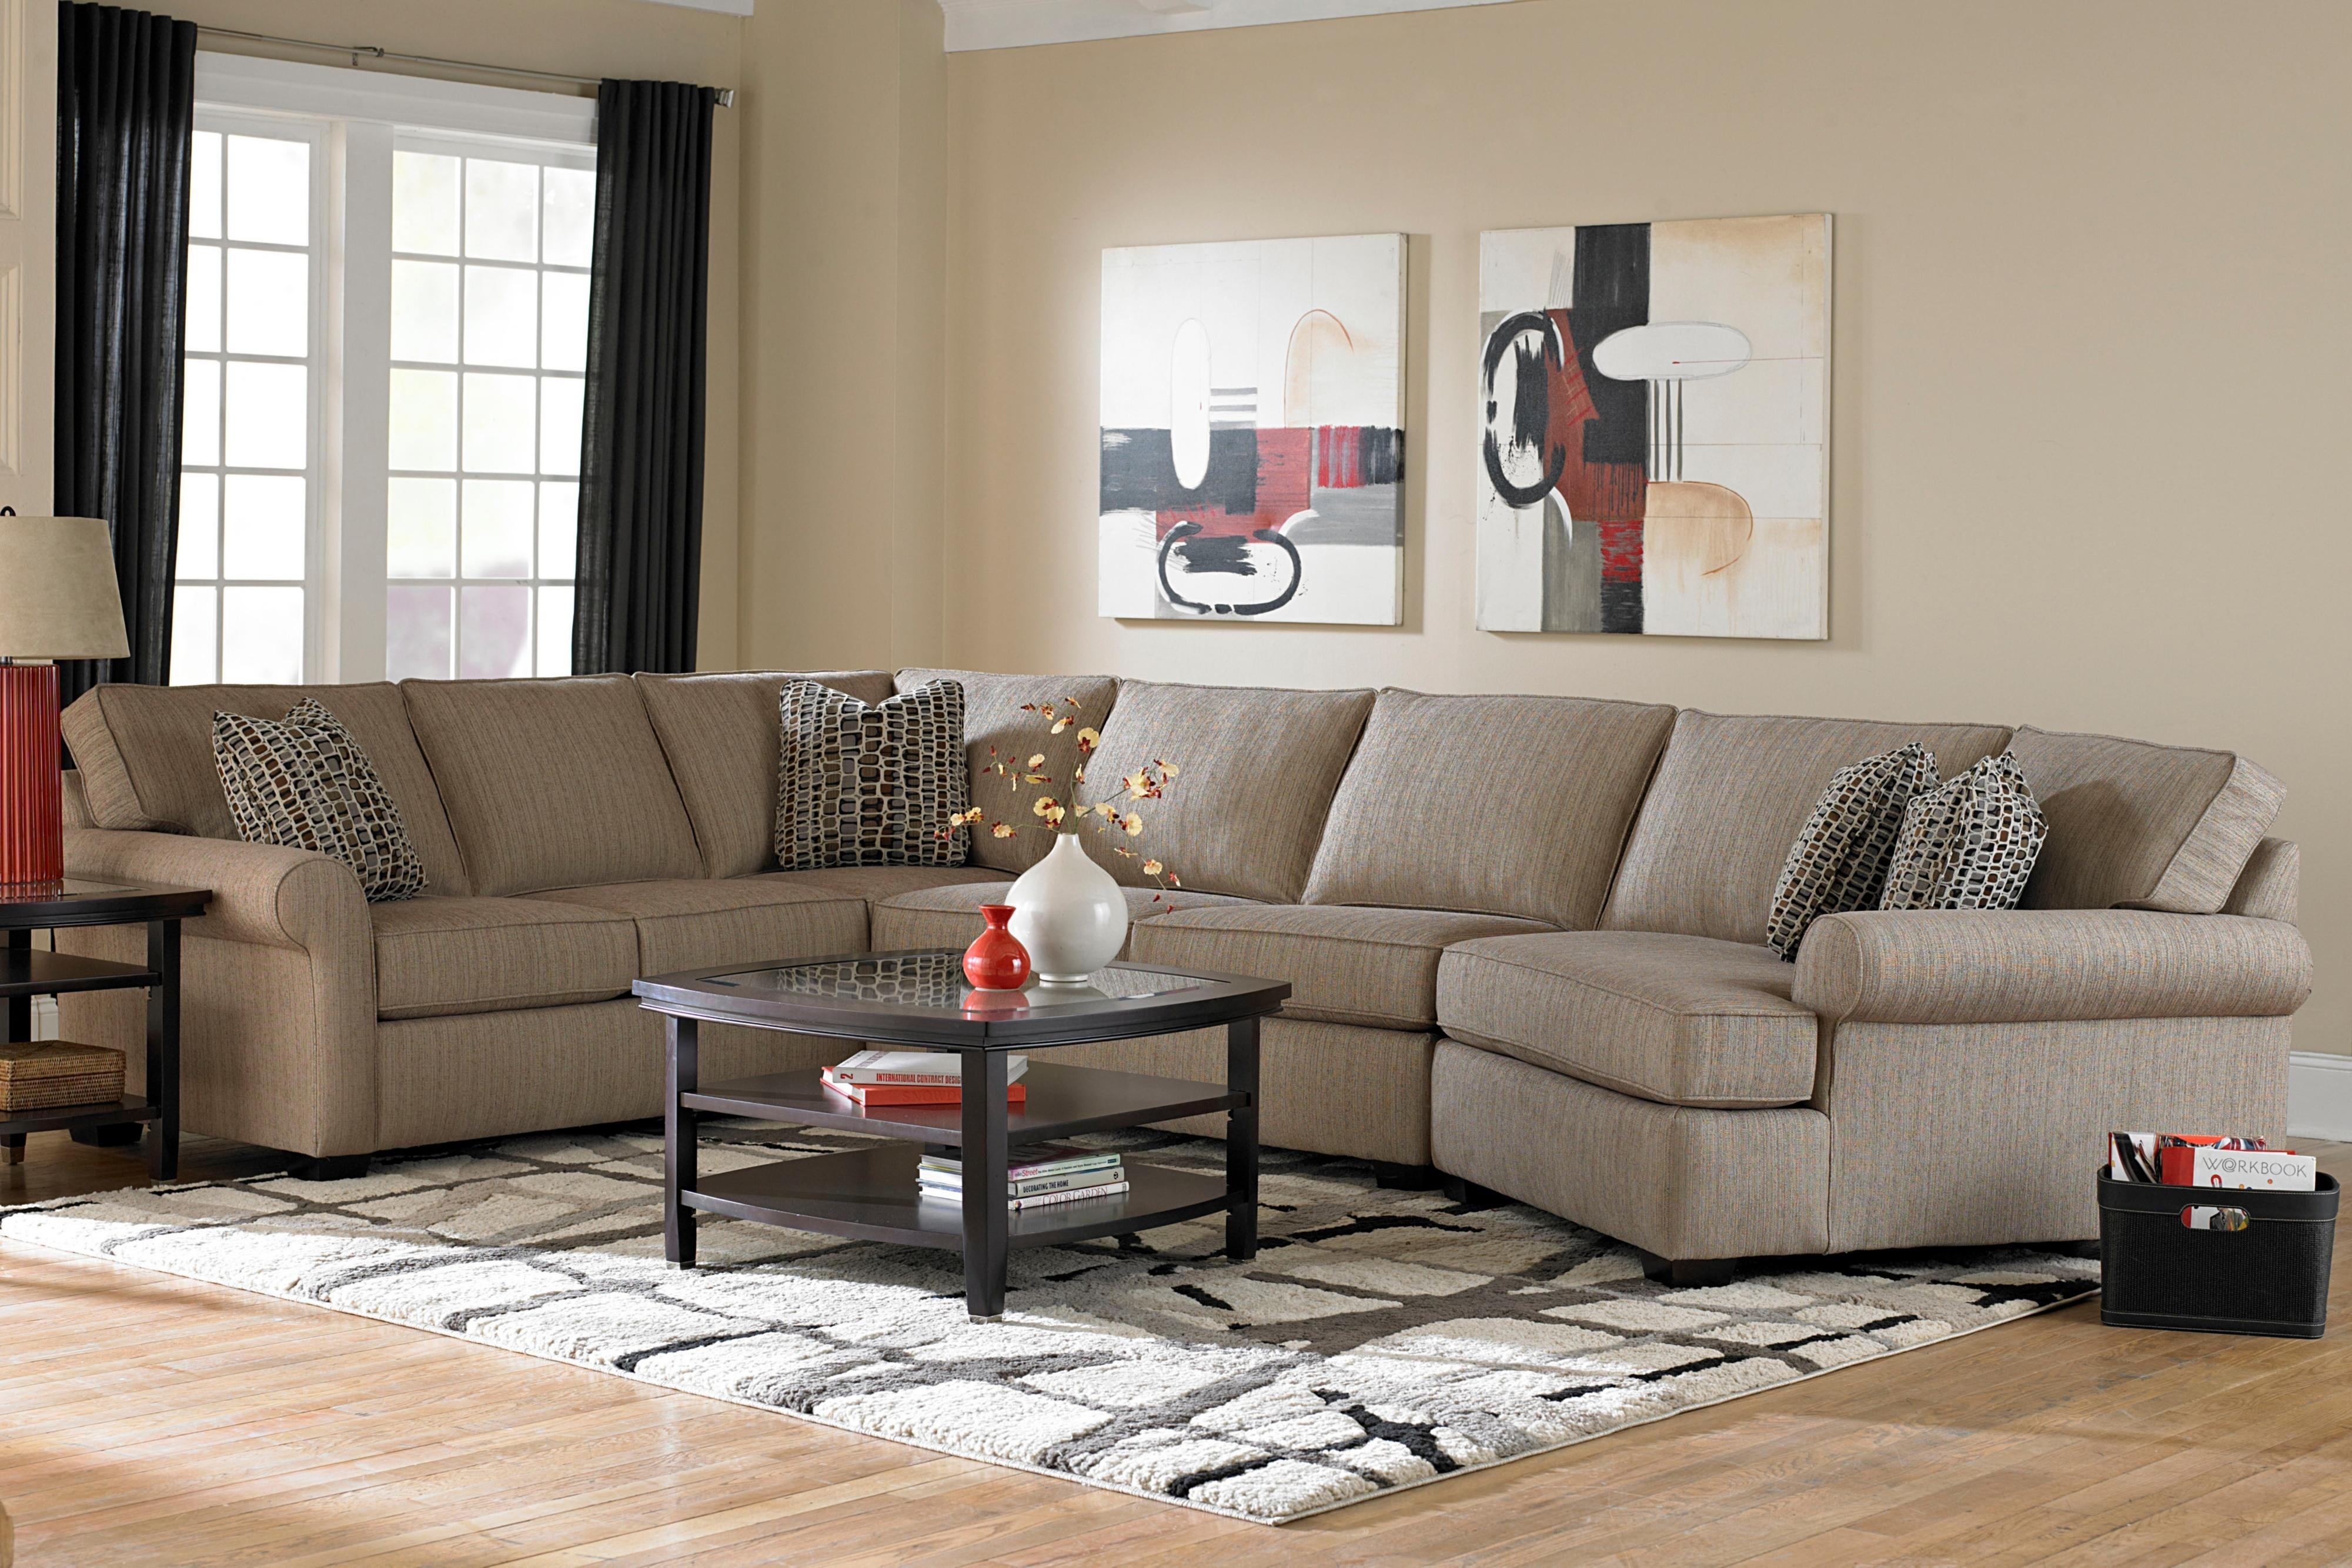 Broyhill Furniture Ethan Transitional Sectional Sofa With Right With Regard To Lancaster Pa Sectional Sofas (Image 2 of 10)